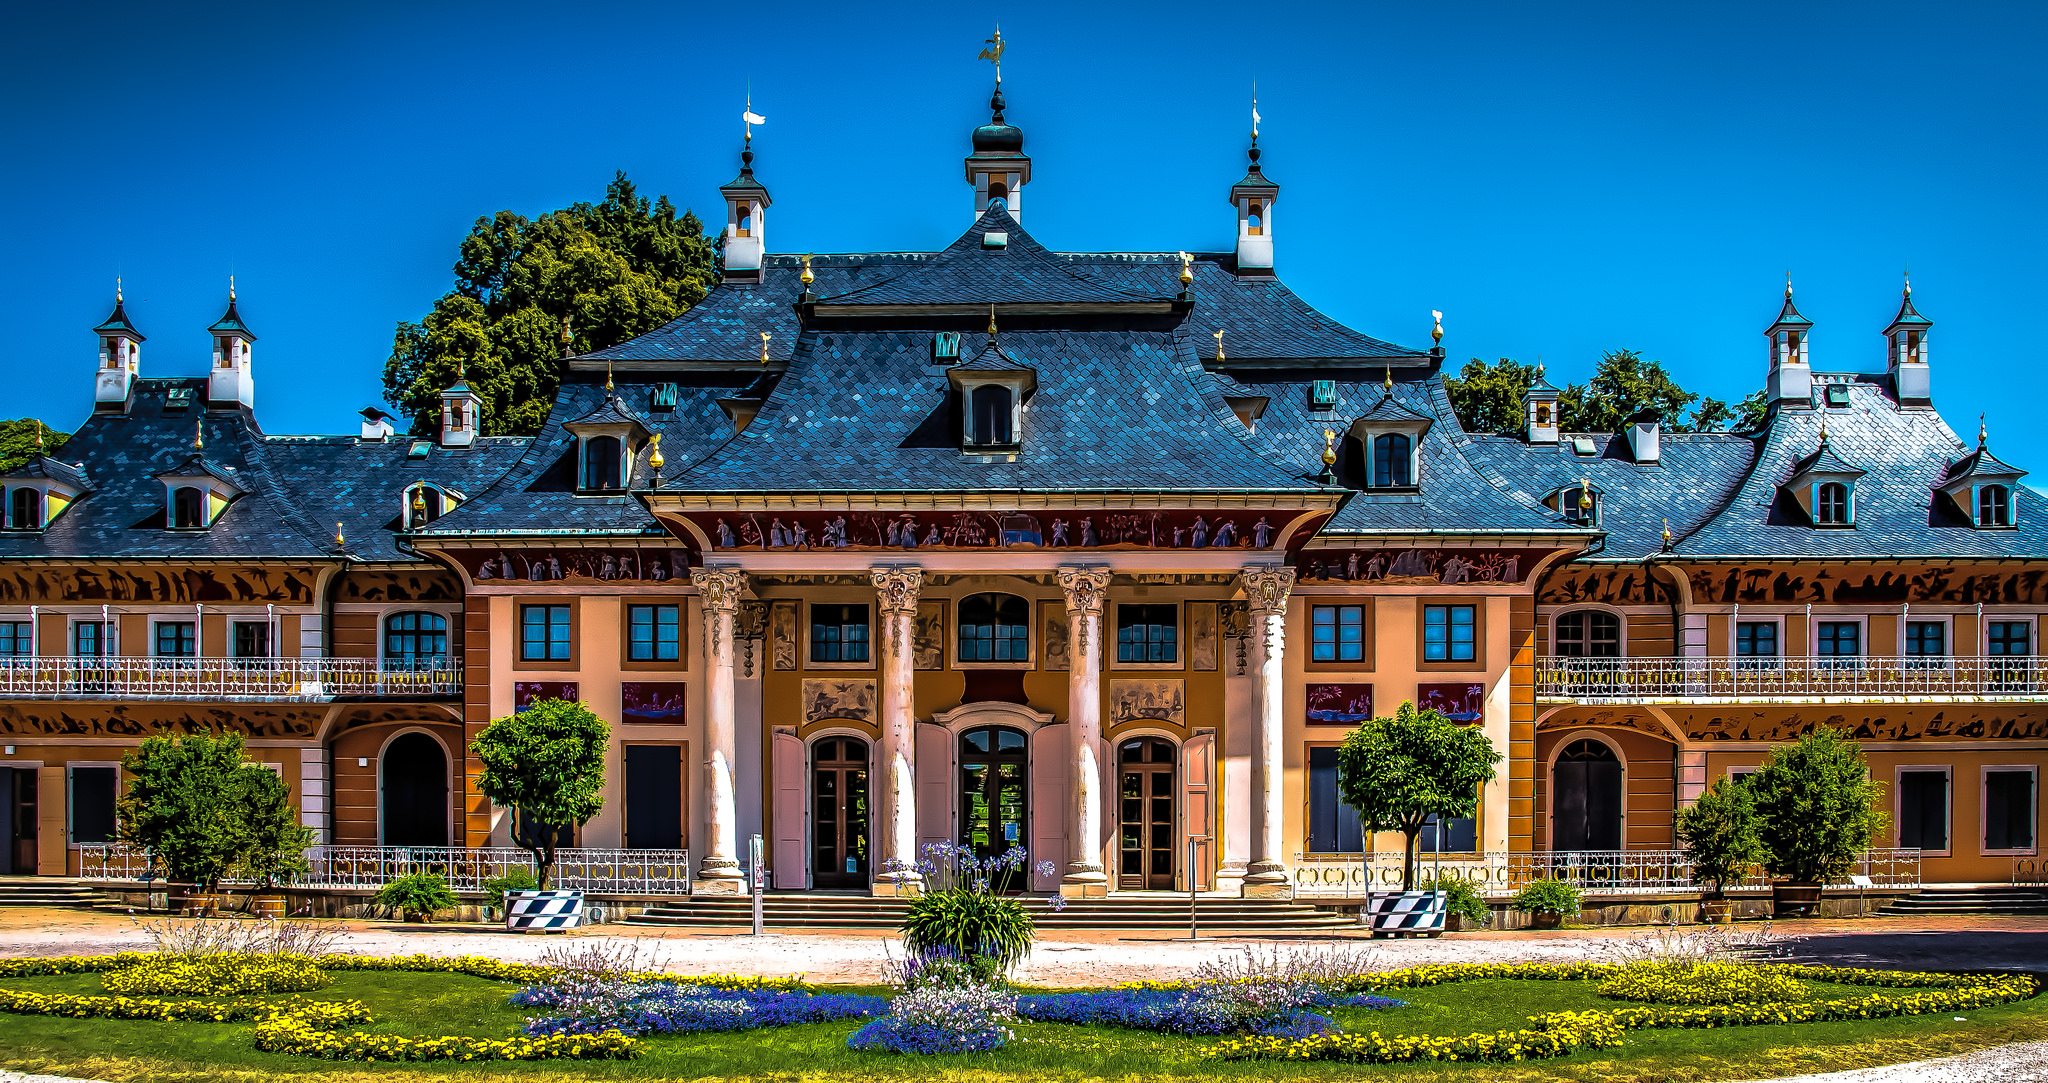 Pillnitz.Castle.Dresden.Germany